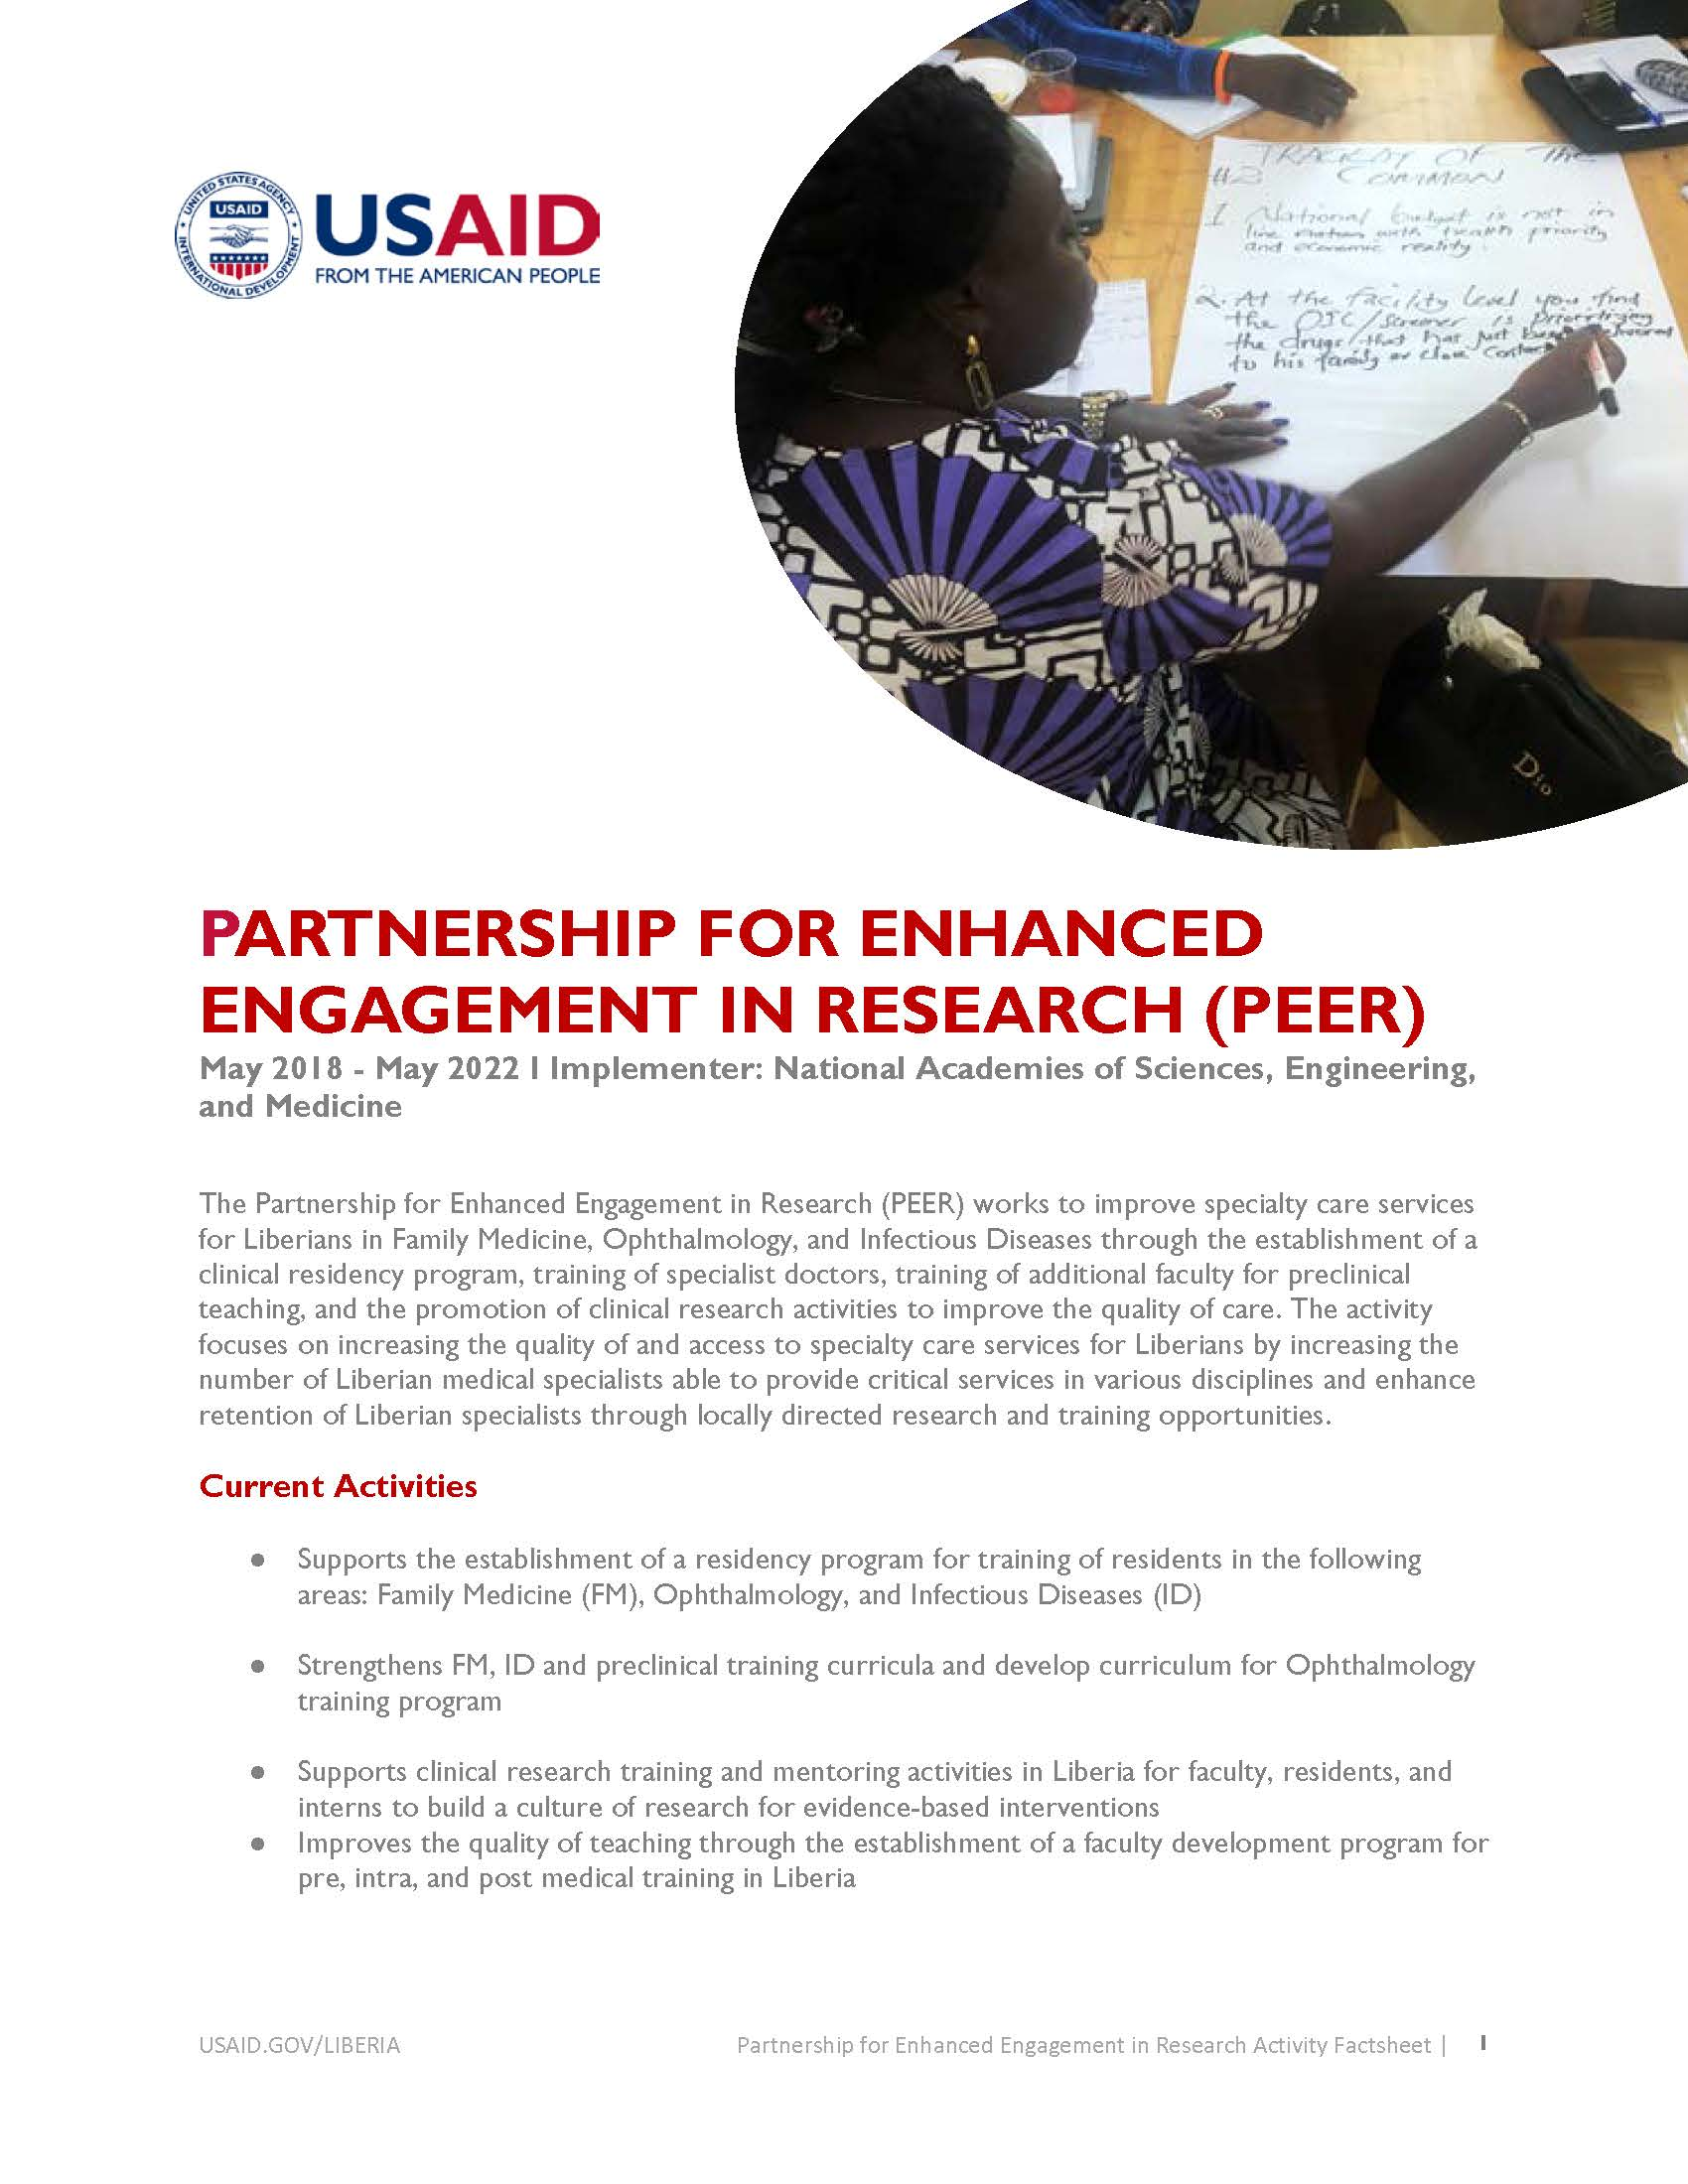 Partnership for Enhanced Engagement in Research Activity